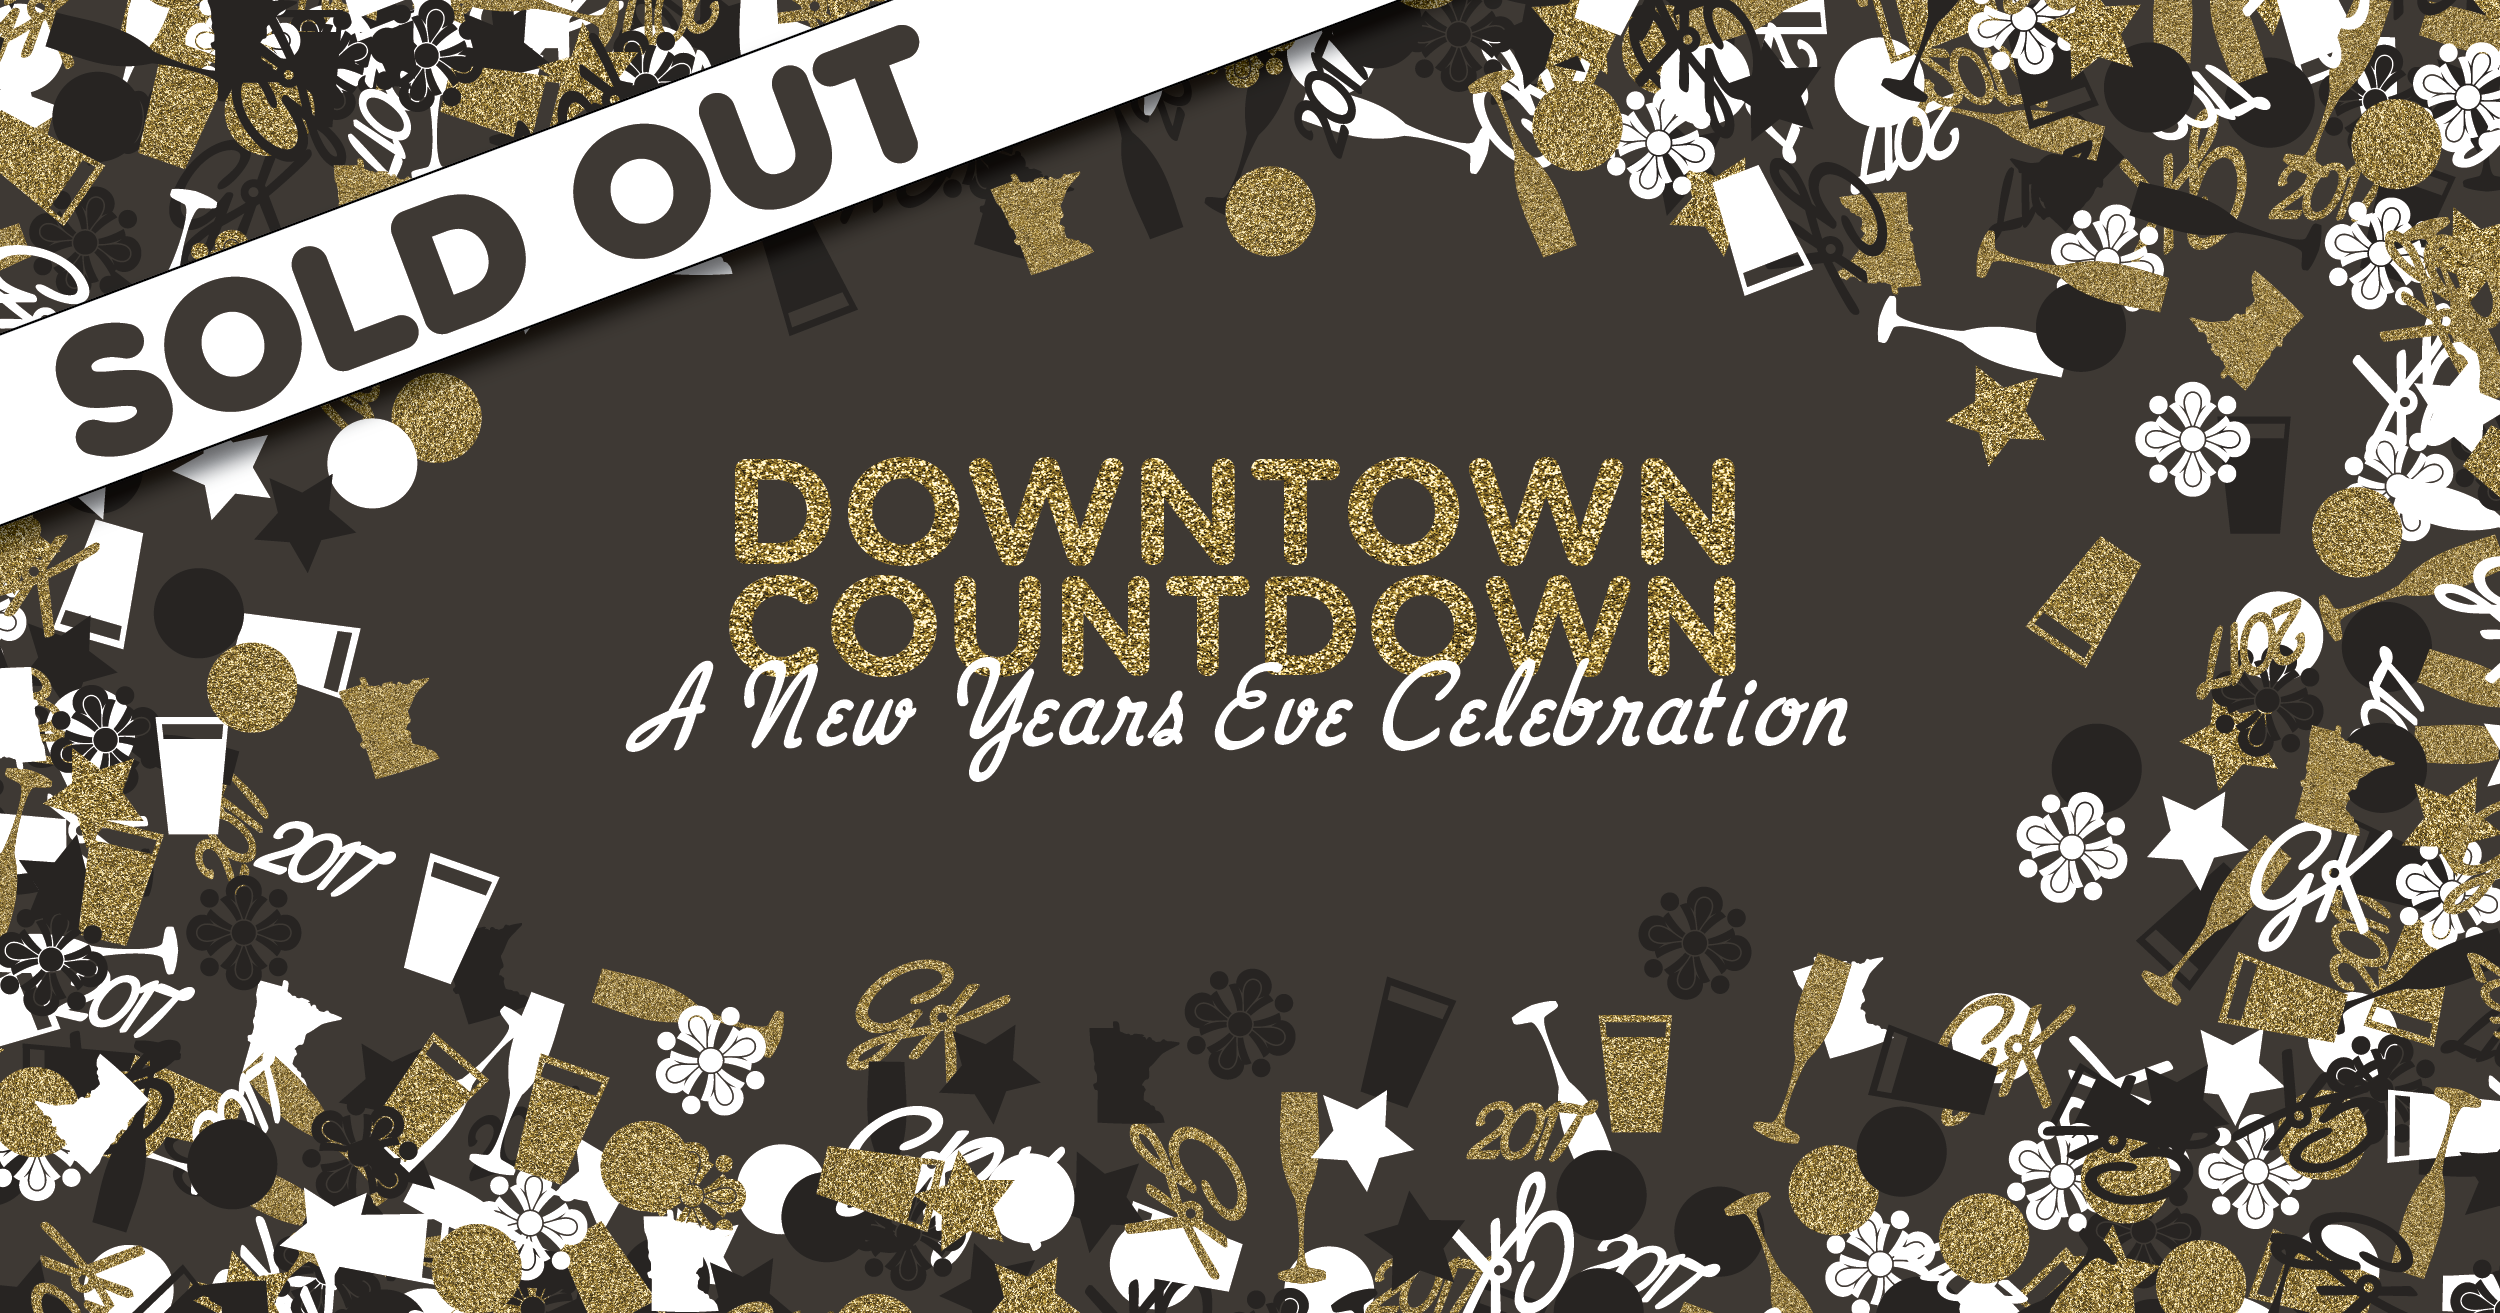 Knitting Unlimited Minneapolis : Downtown countdown a new year s eve celebration getknit